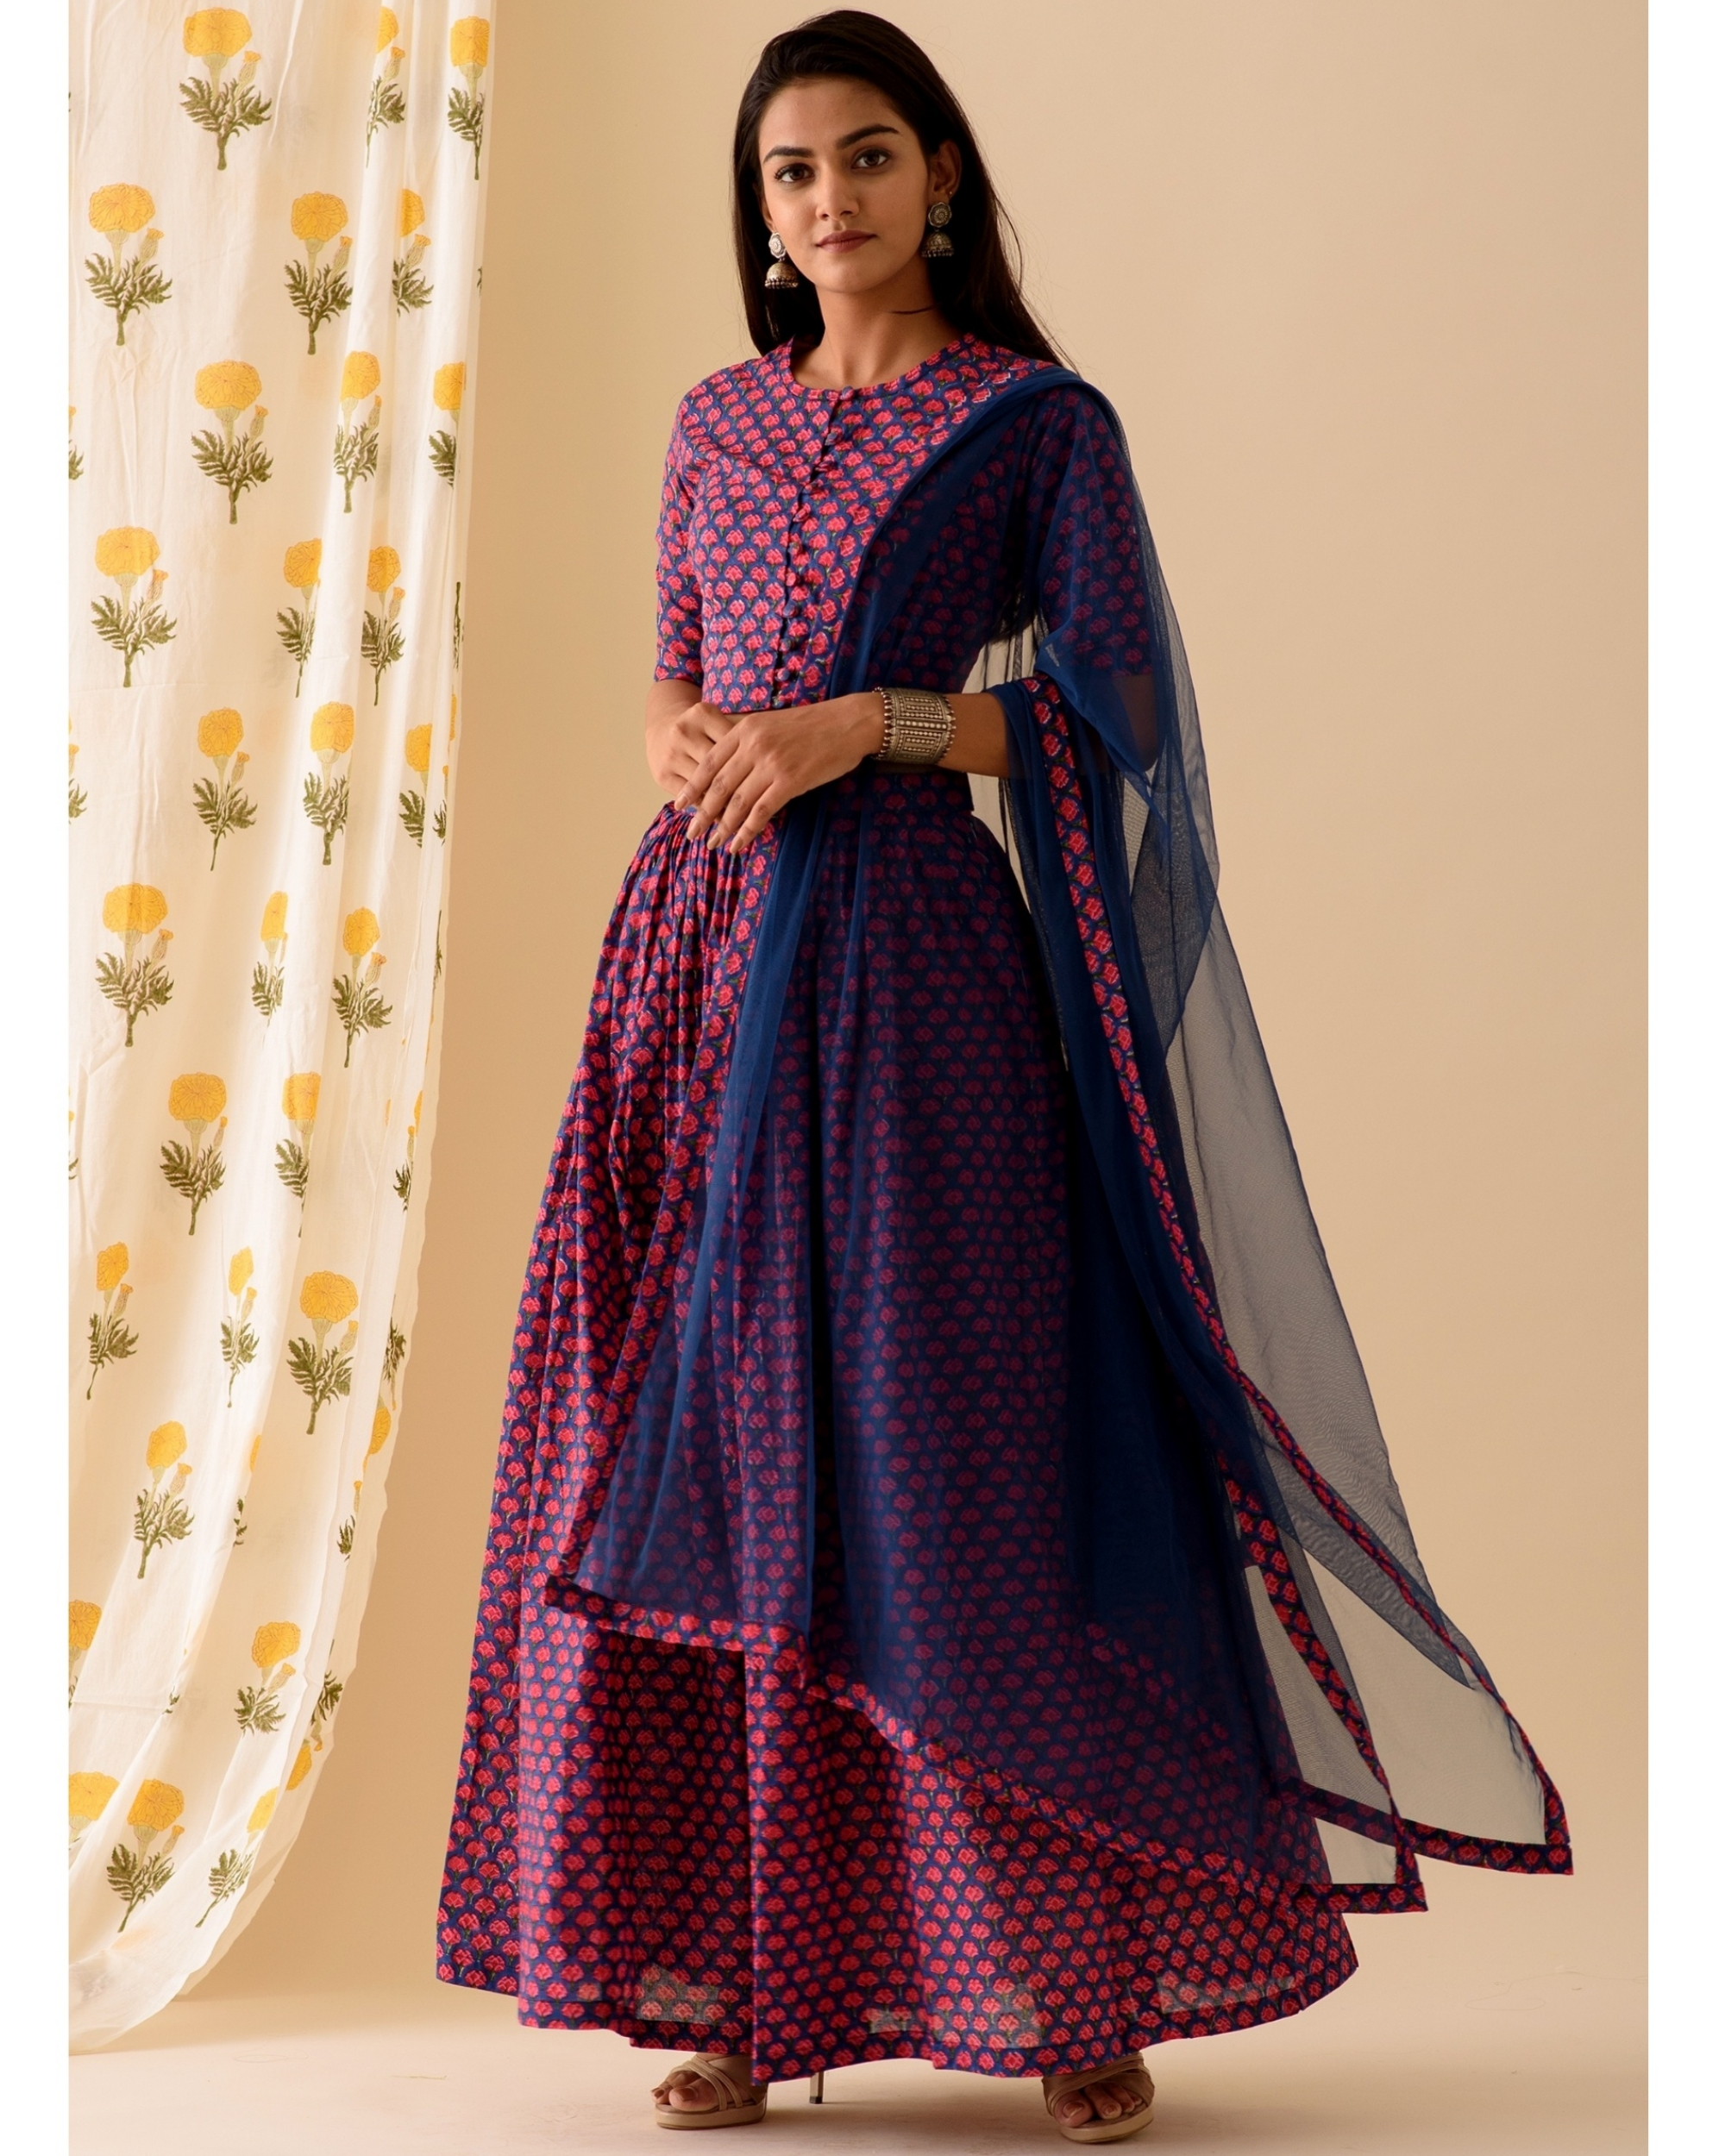 Violet and blue lehenga-set of three